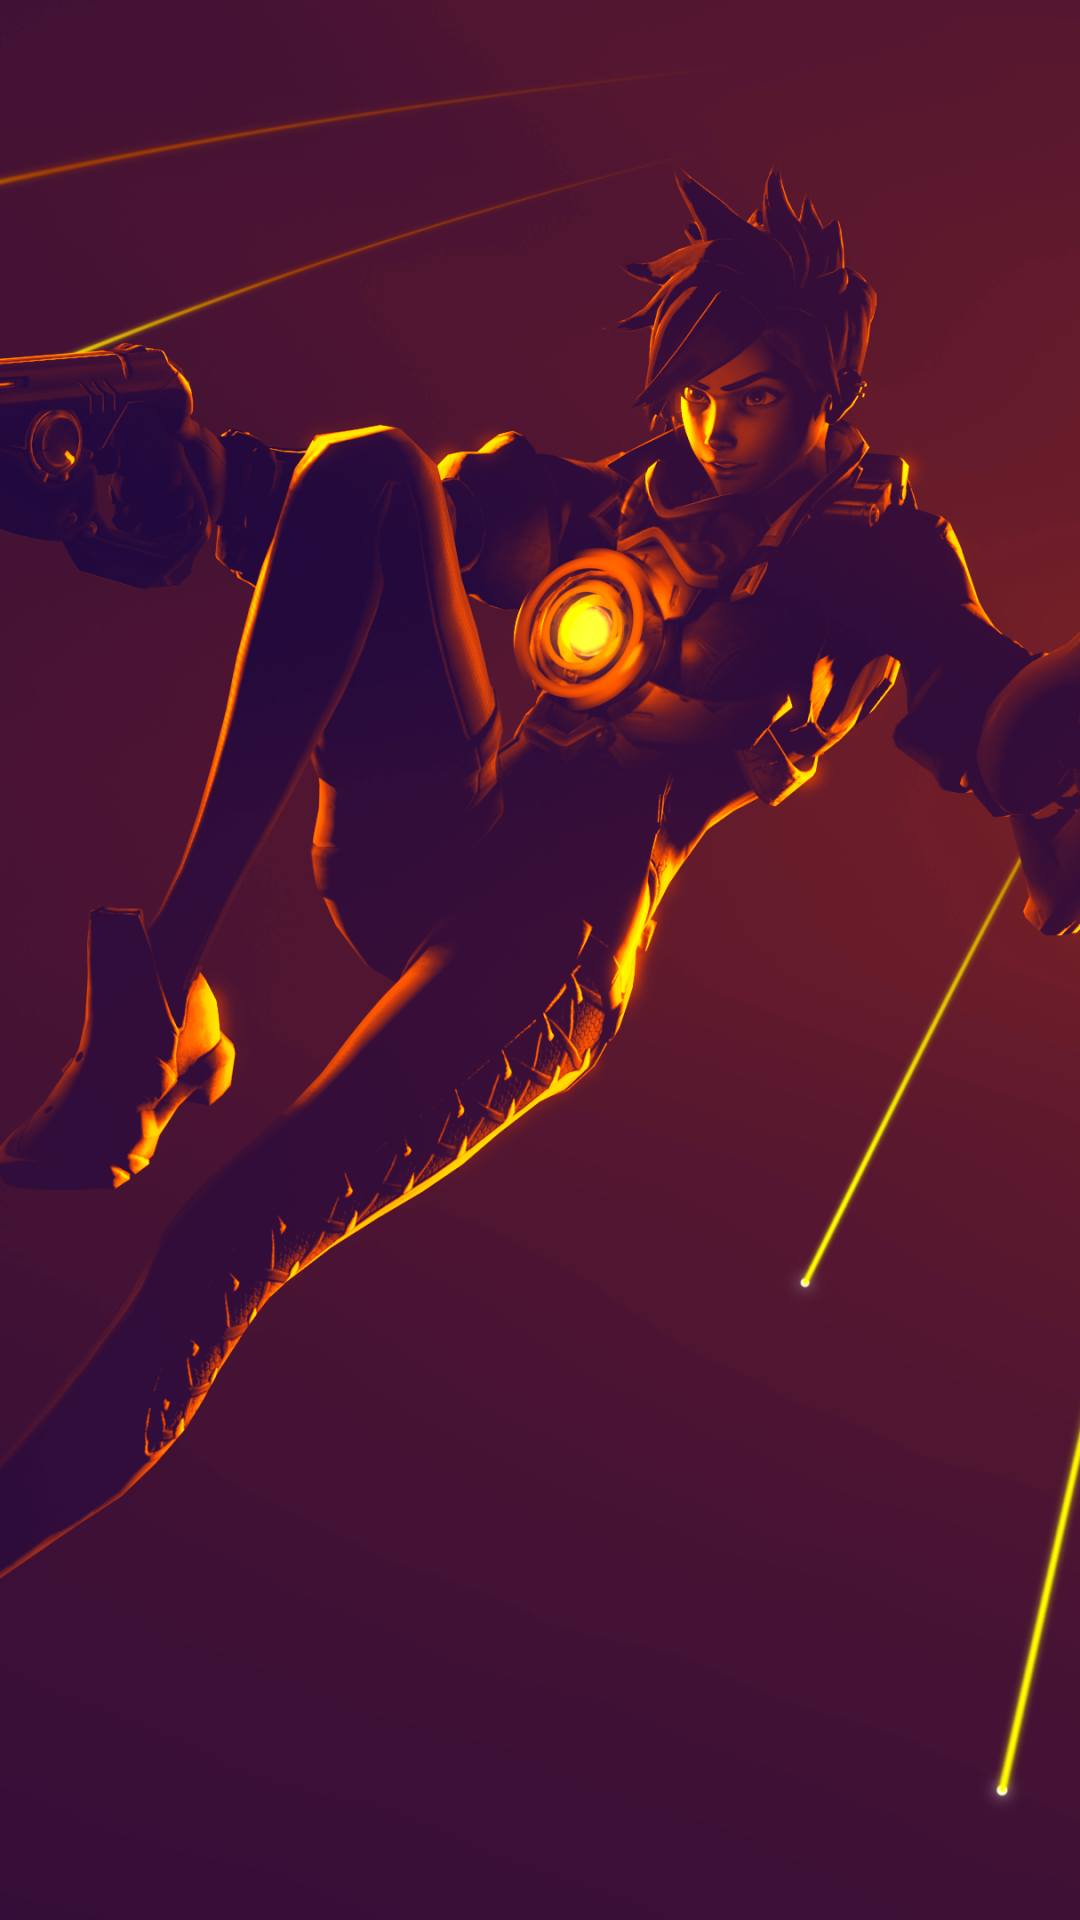 Wallpaper iphone overwatch - Check Wallpaper Abyss